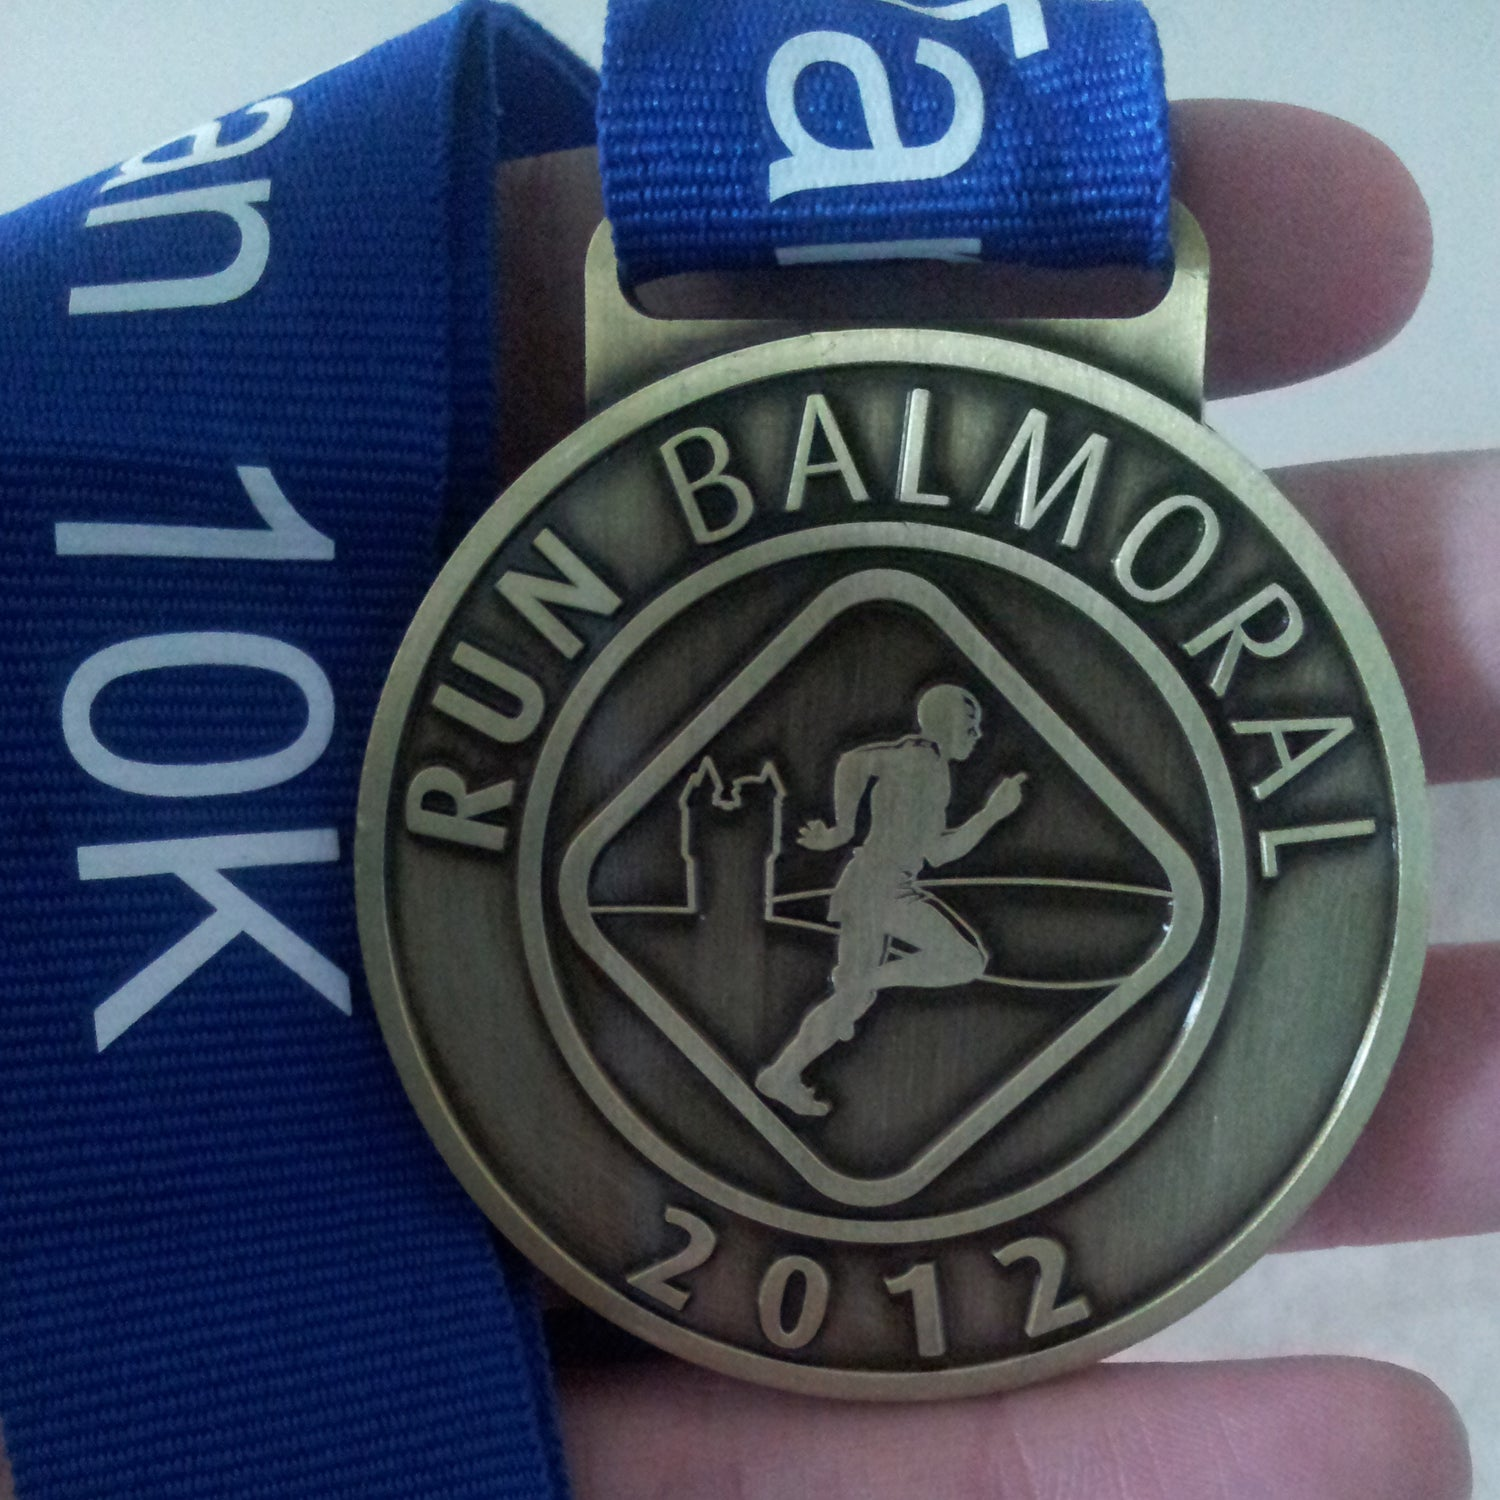 Williams: The running festival has a 5K, a 10K (notorious for a killer hill in the middle), and a 15-mile trail run. All of the medals are just plain, simple, and classy. I also appreciate that they vary the colors and don't stoop to cheap ribbon. Plus, you get to run in the Queen's backyard!